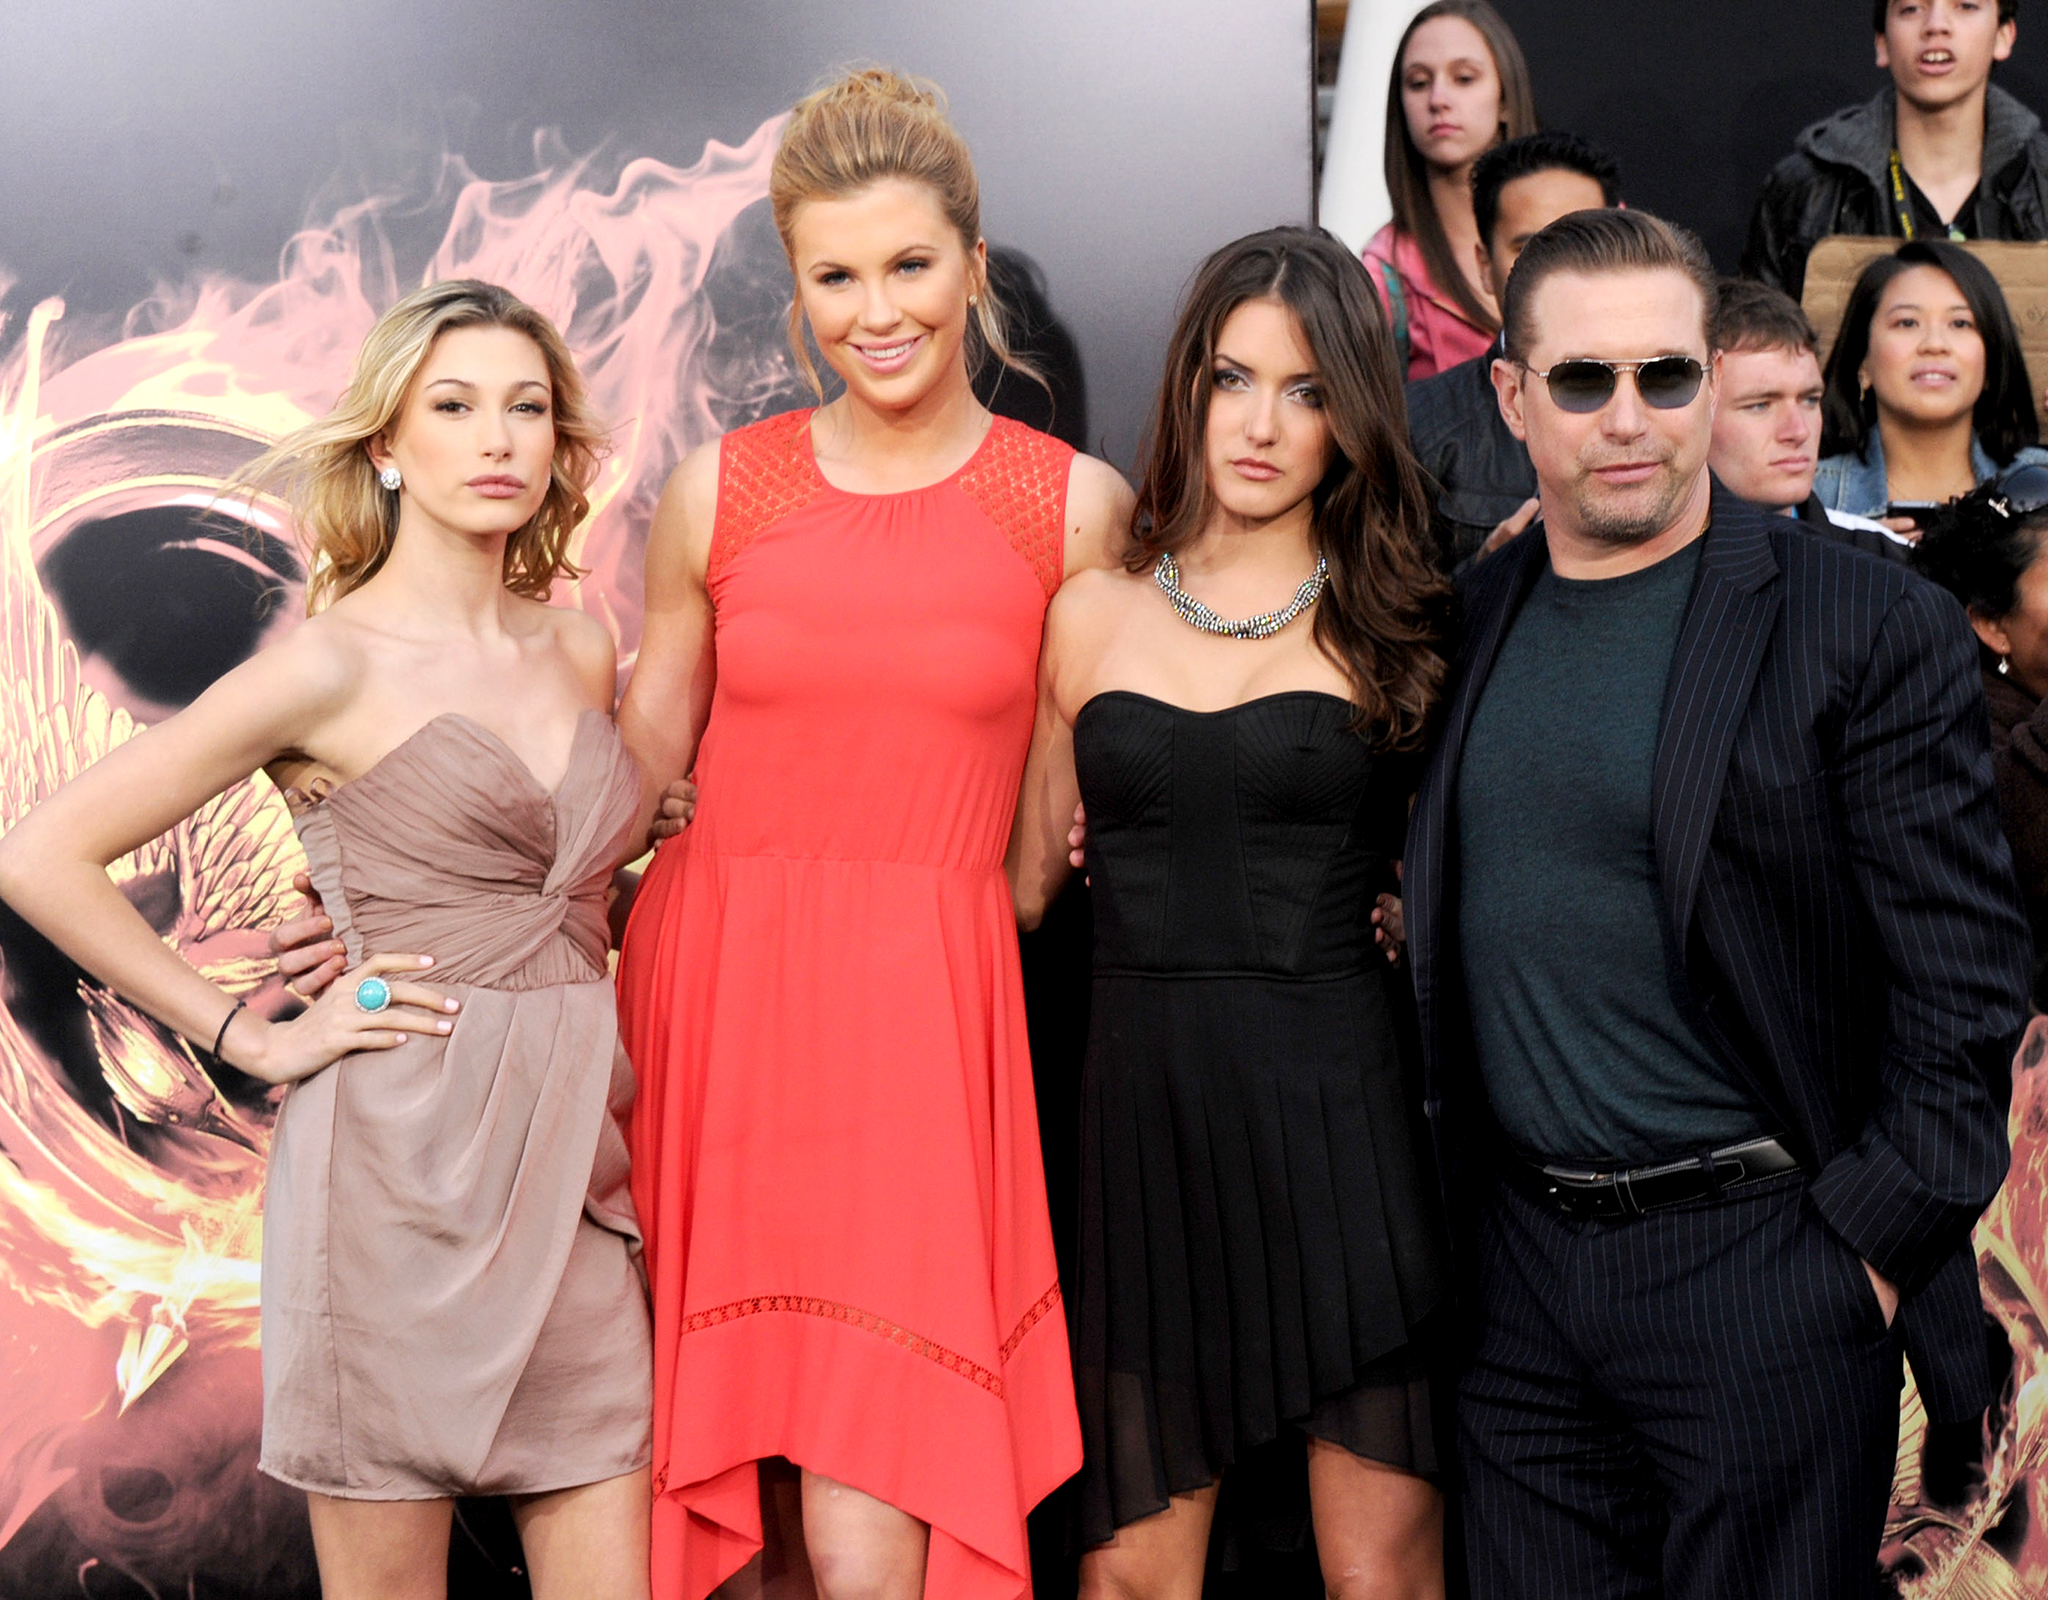 The model with her extended family at the 'Hunger Games' premiere in March. (Gregg DeGuire/FilmMagic)